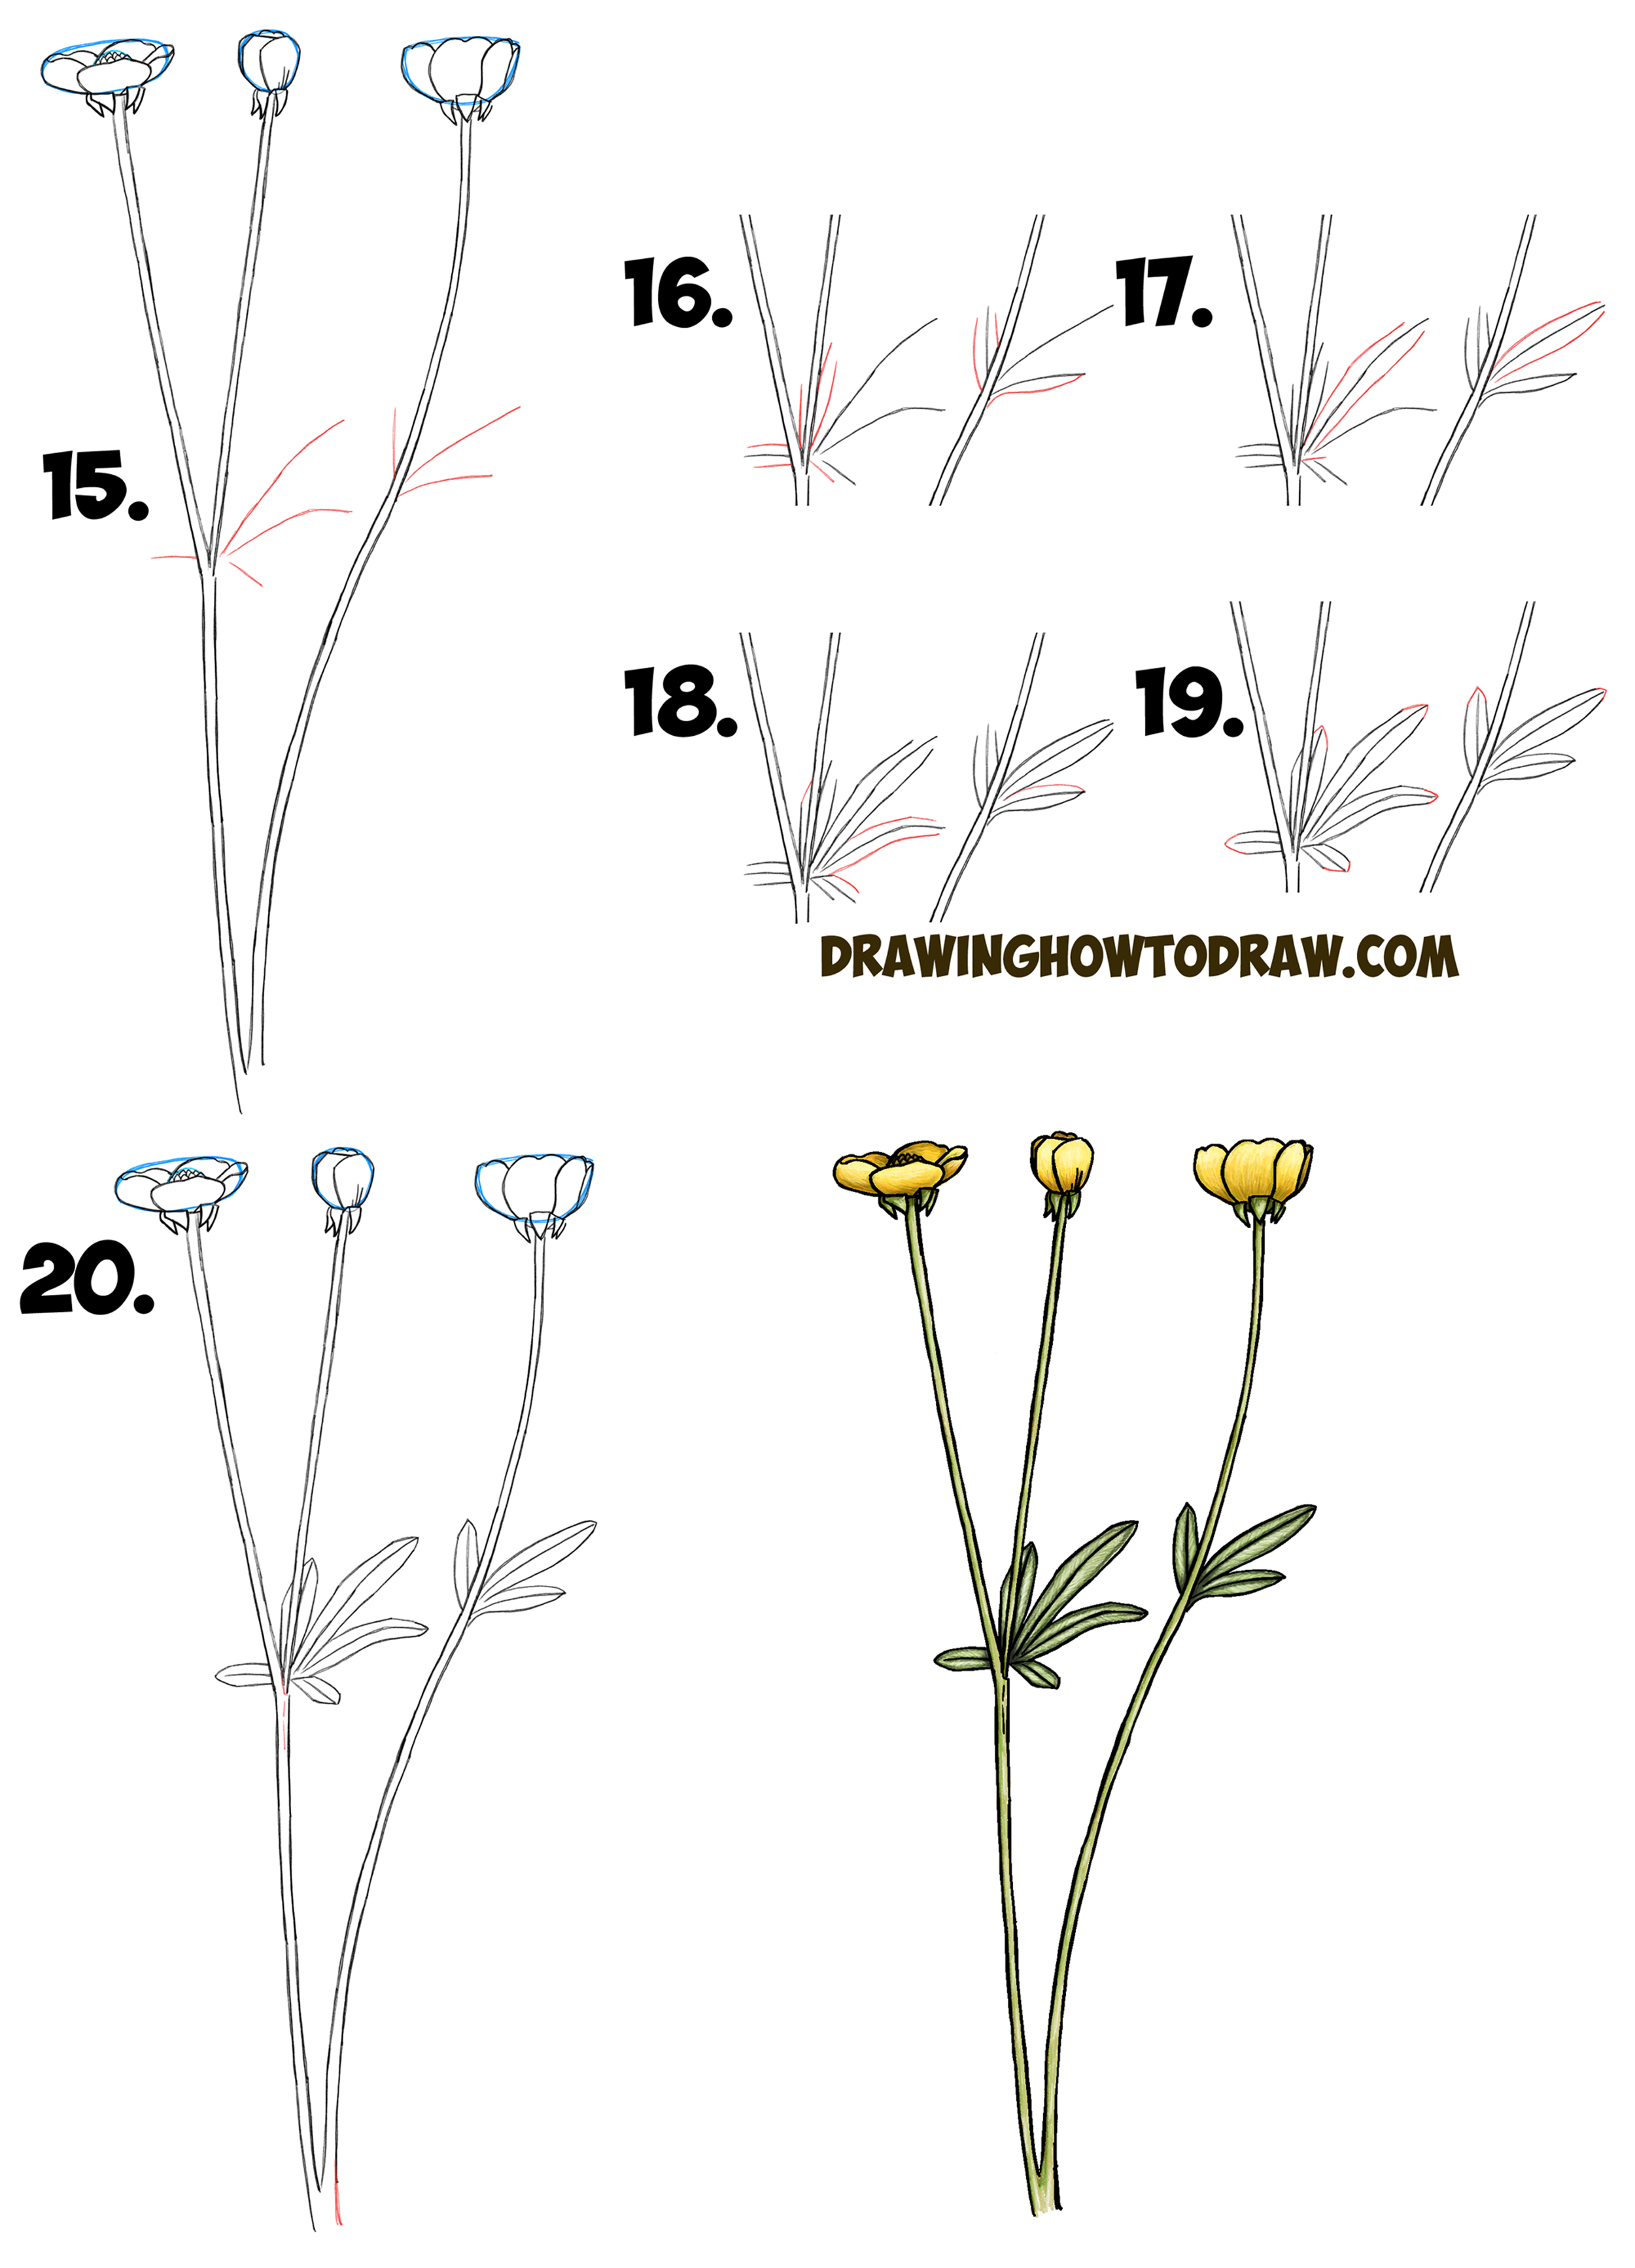 Learn How to Draw a Buttercup Flower Step by Step Drawing Lesson (Buttercups) Simple Steps for Beginners